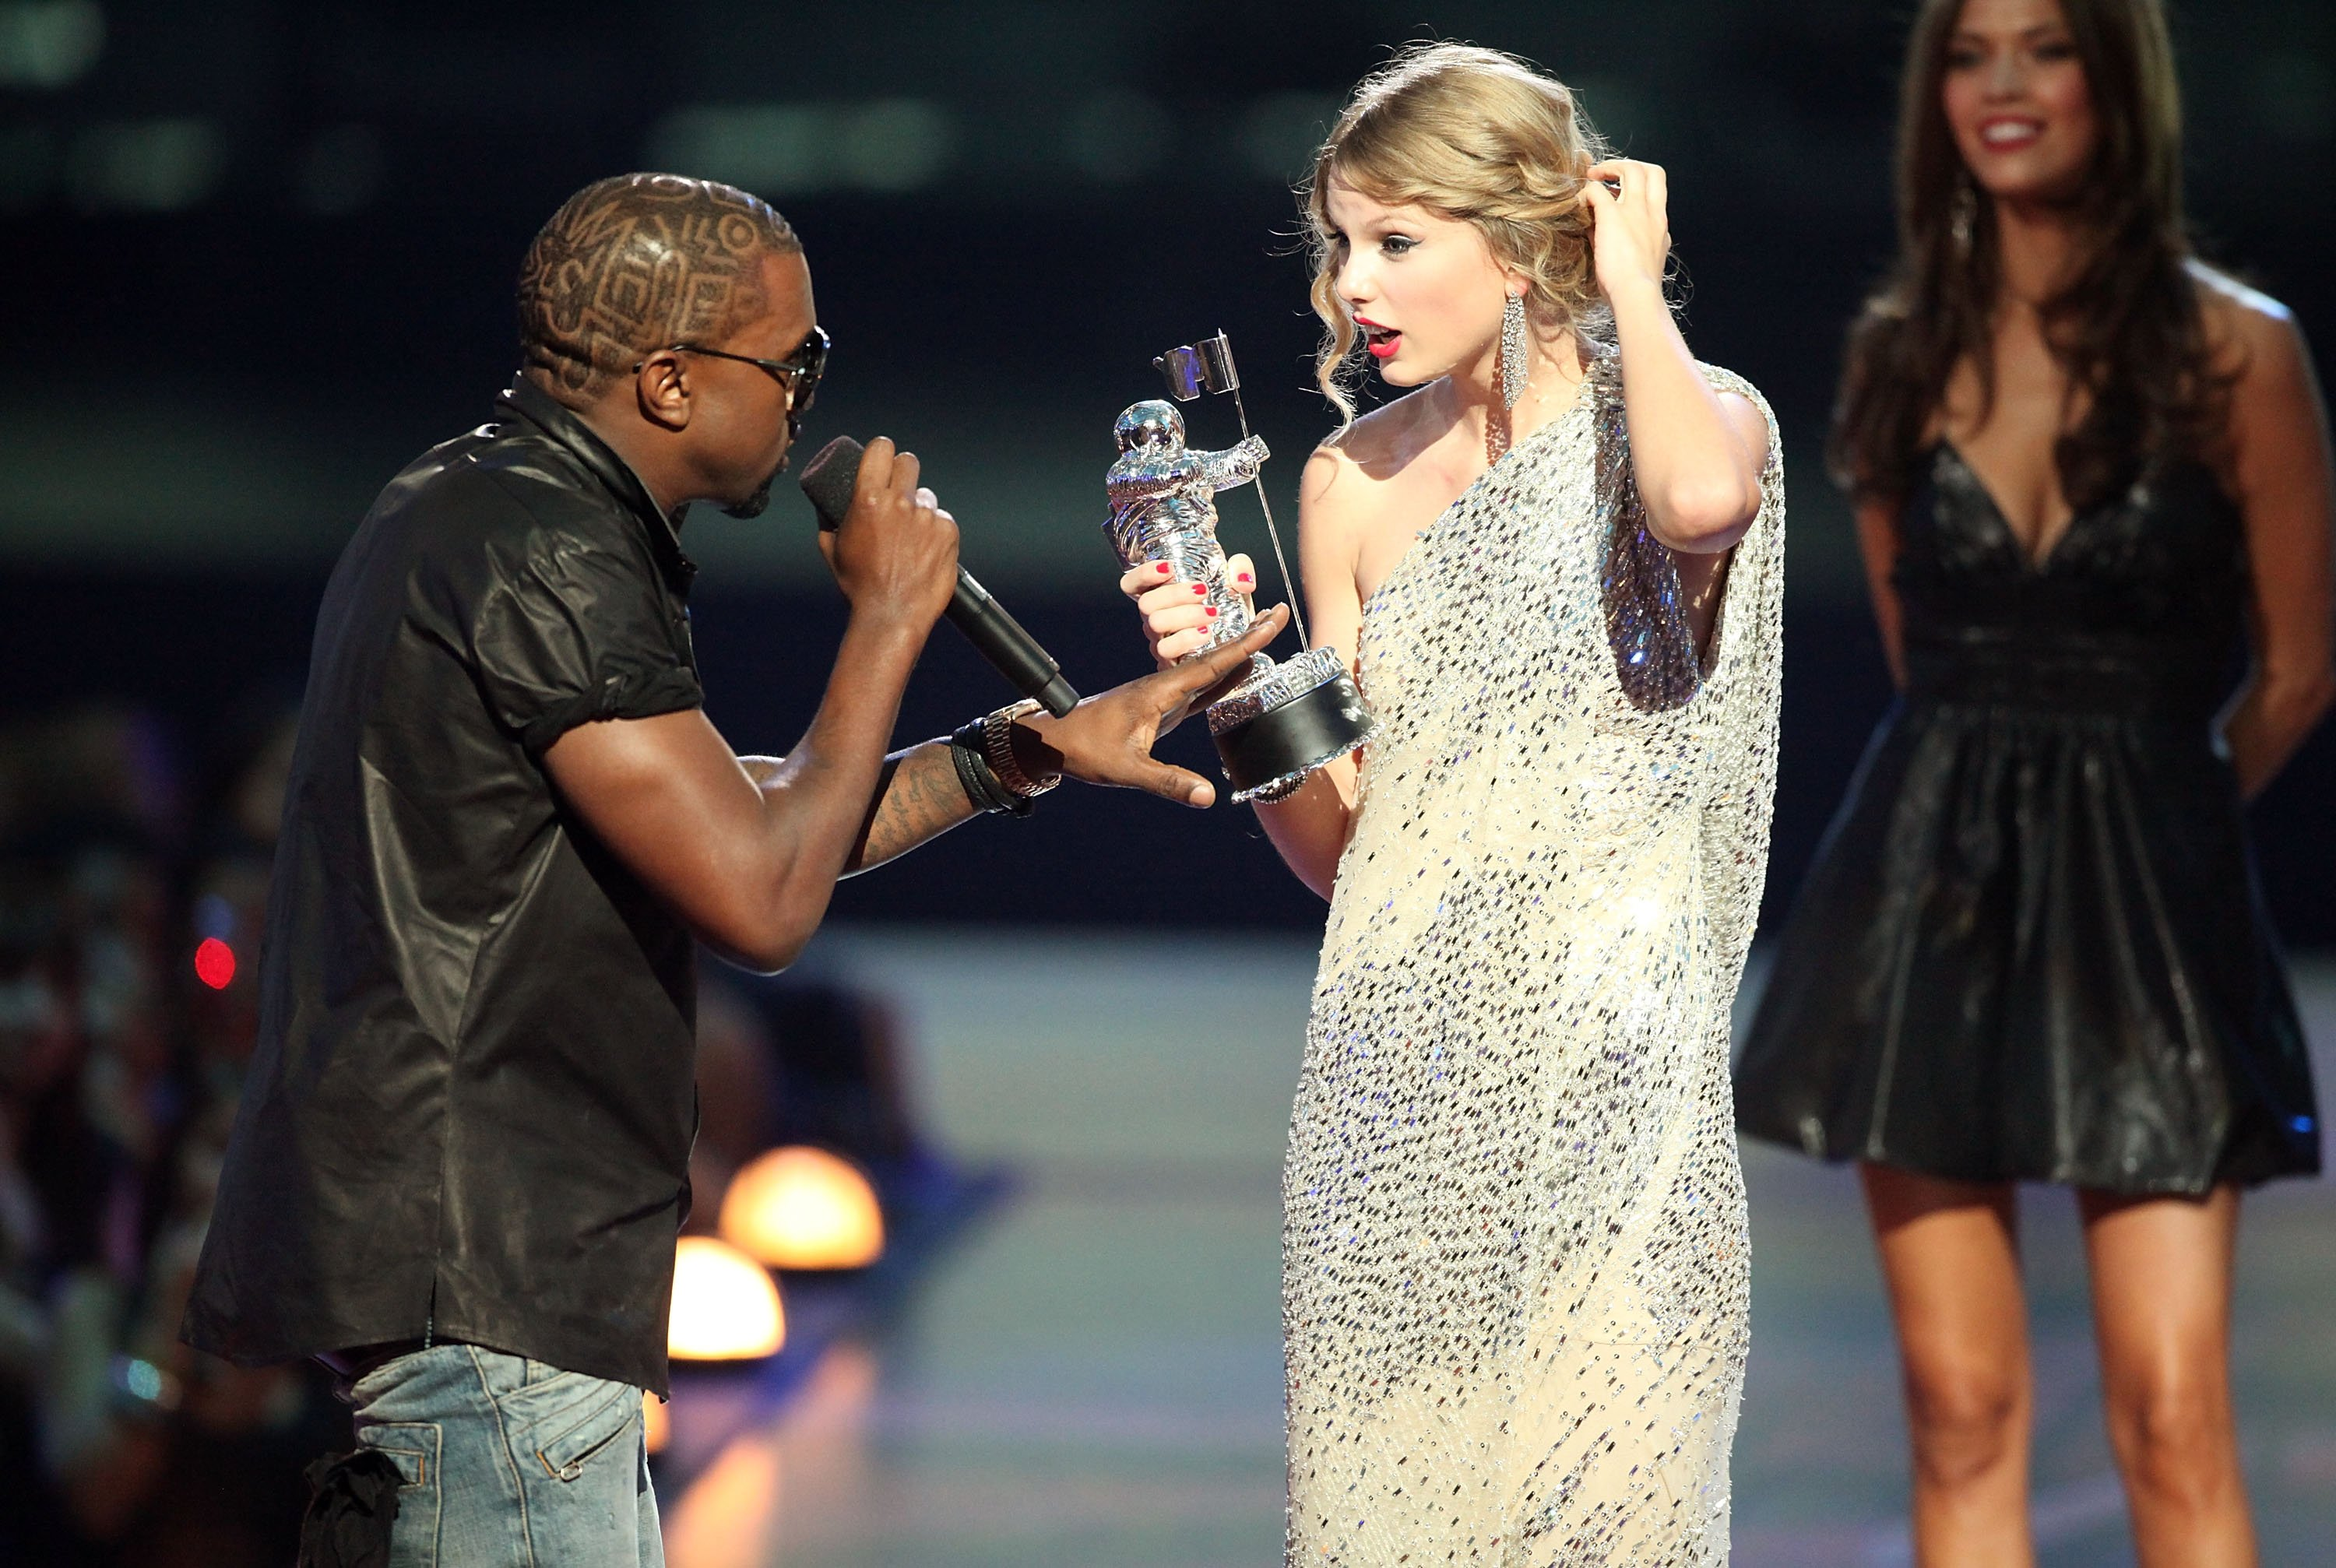 """Kanye West jumps onstage after Taylor Swift won the """"Best Female Video"""" award during the 2009 MTV Video Music Awards at Radio City Music Hall on September 13, 2009, in New York City 